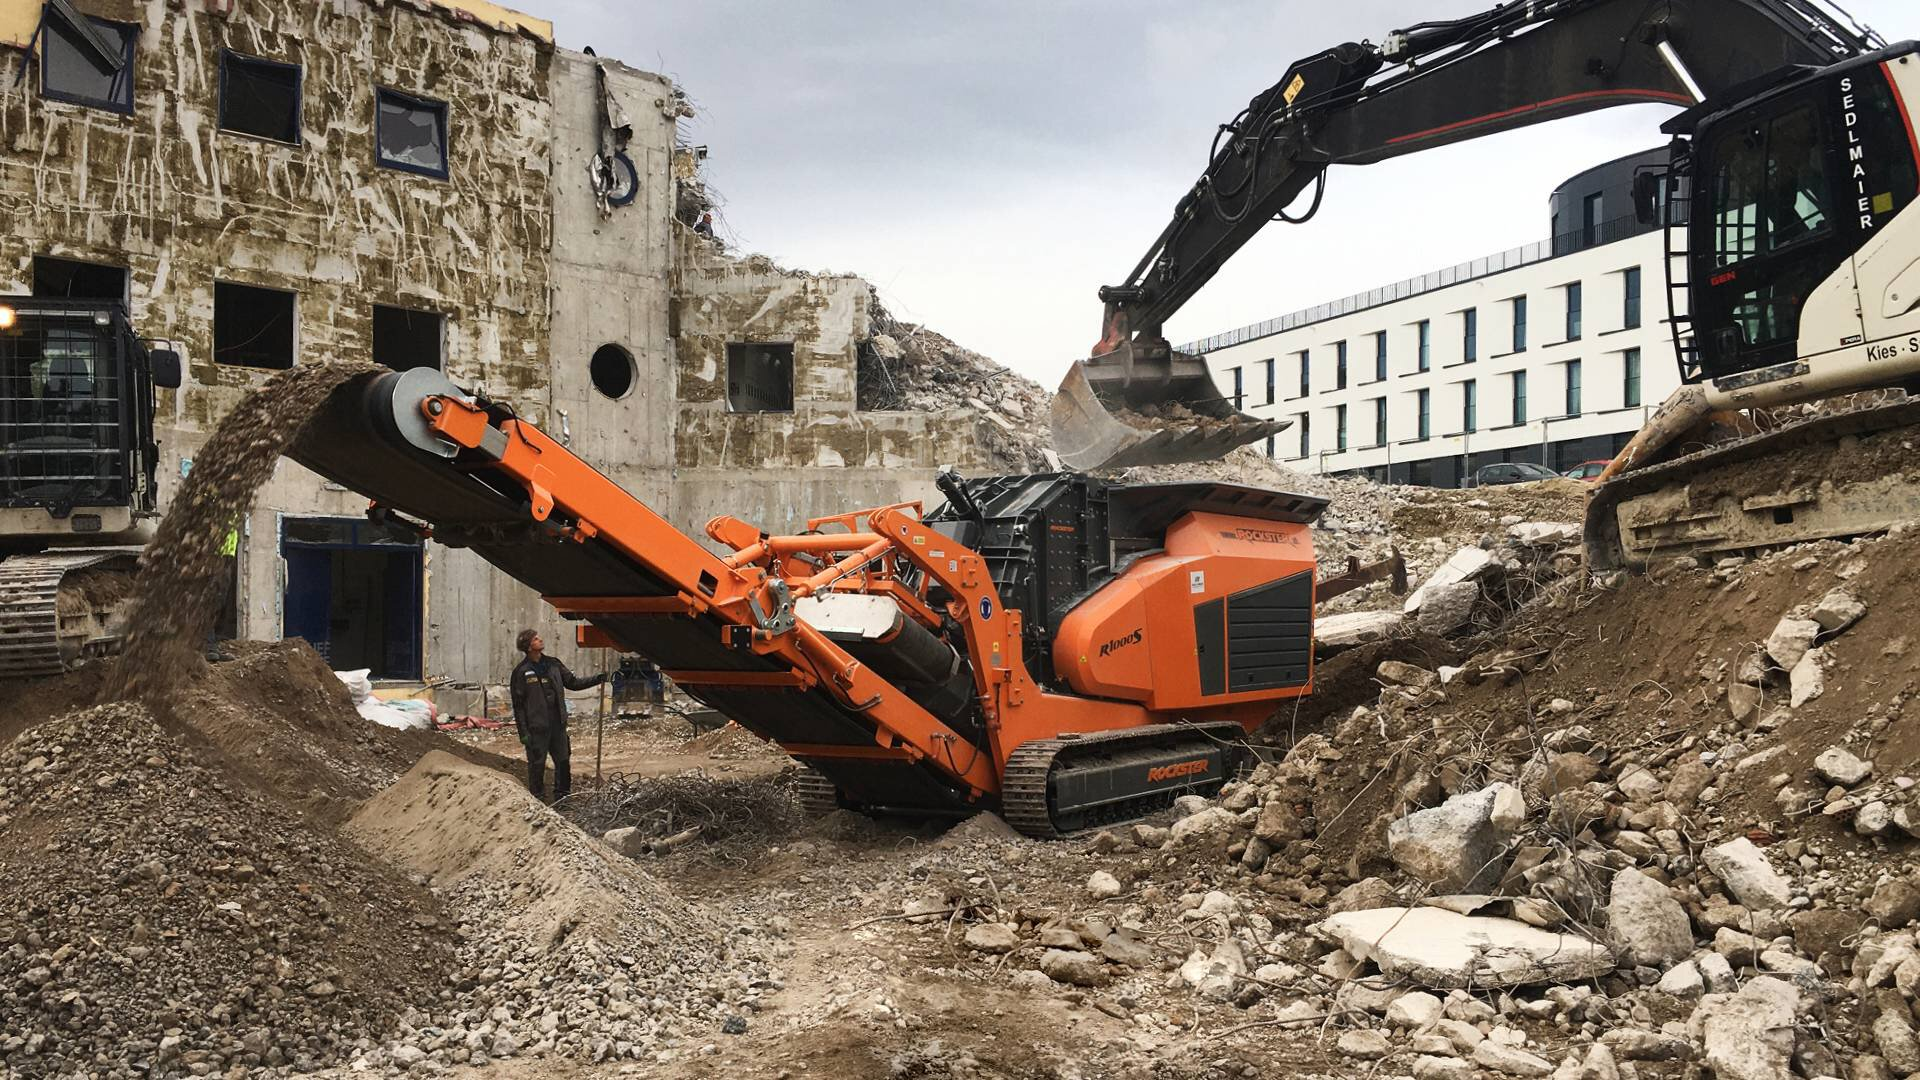 Gallery image 1 - CONSTRUCTION WASTE - Rockster R1000S track-mounted impactor crushes 180-200t/h heavily reinforced demolition debris to 0-50mm.